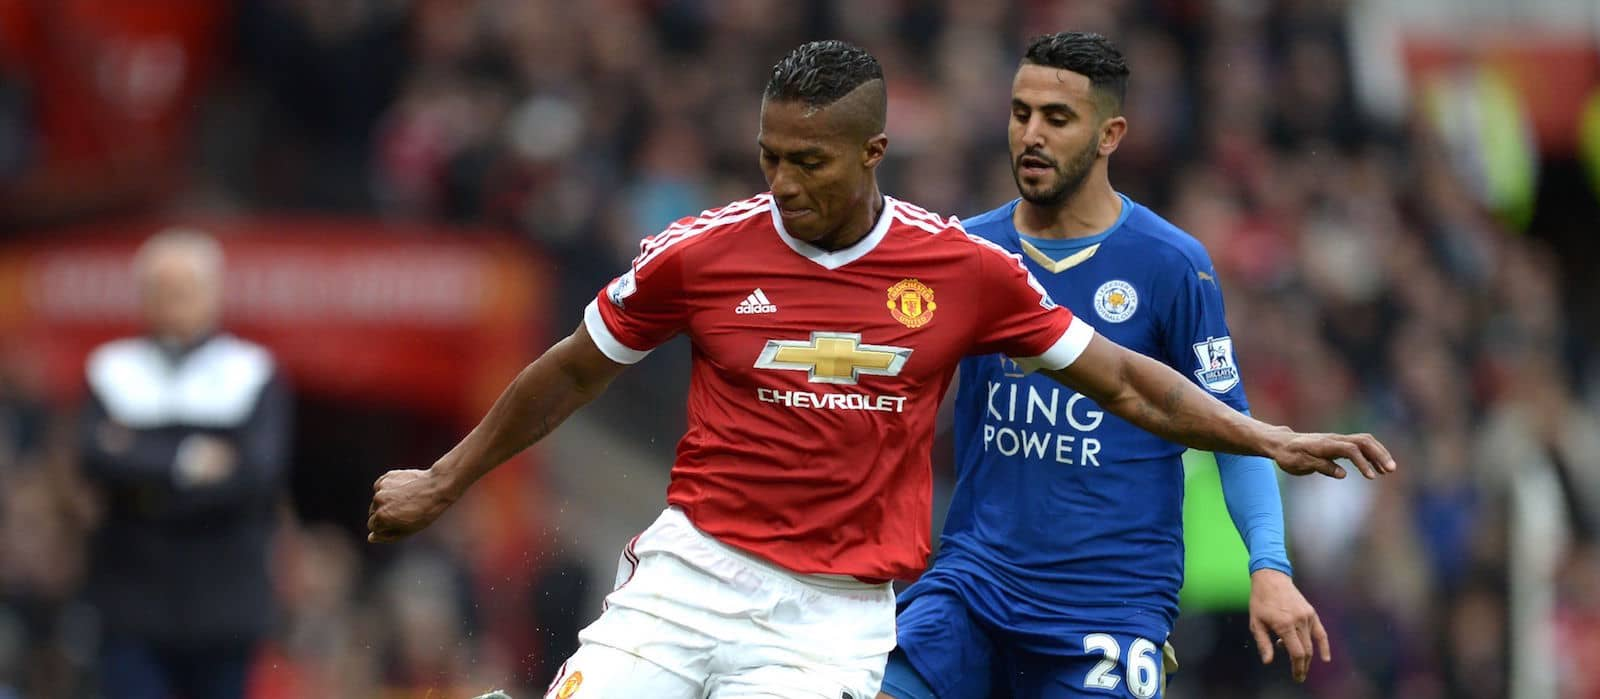 Man United interested in Leicester City's Riyad Mahrez – report